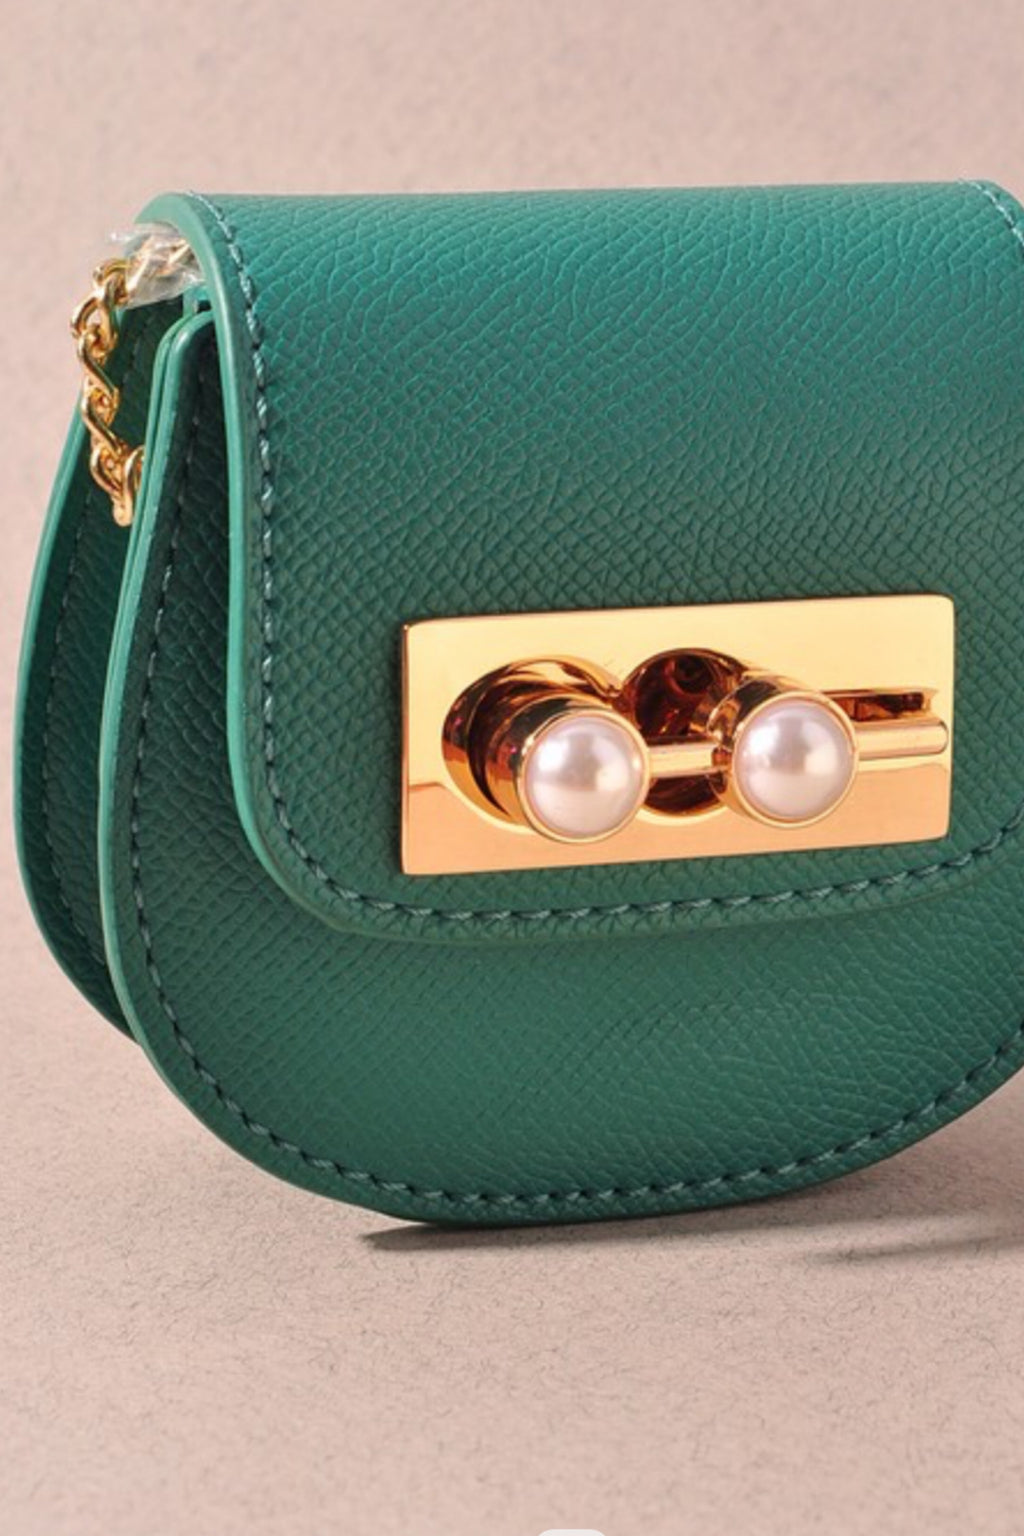 Leather & Pearl Mini Bag - Teal